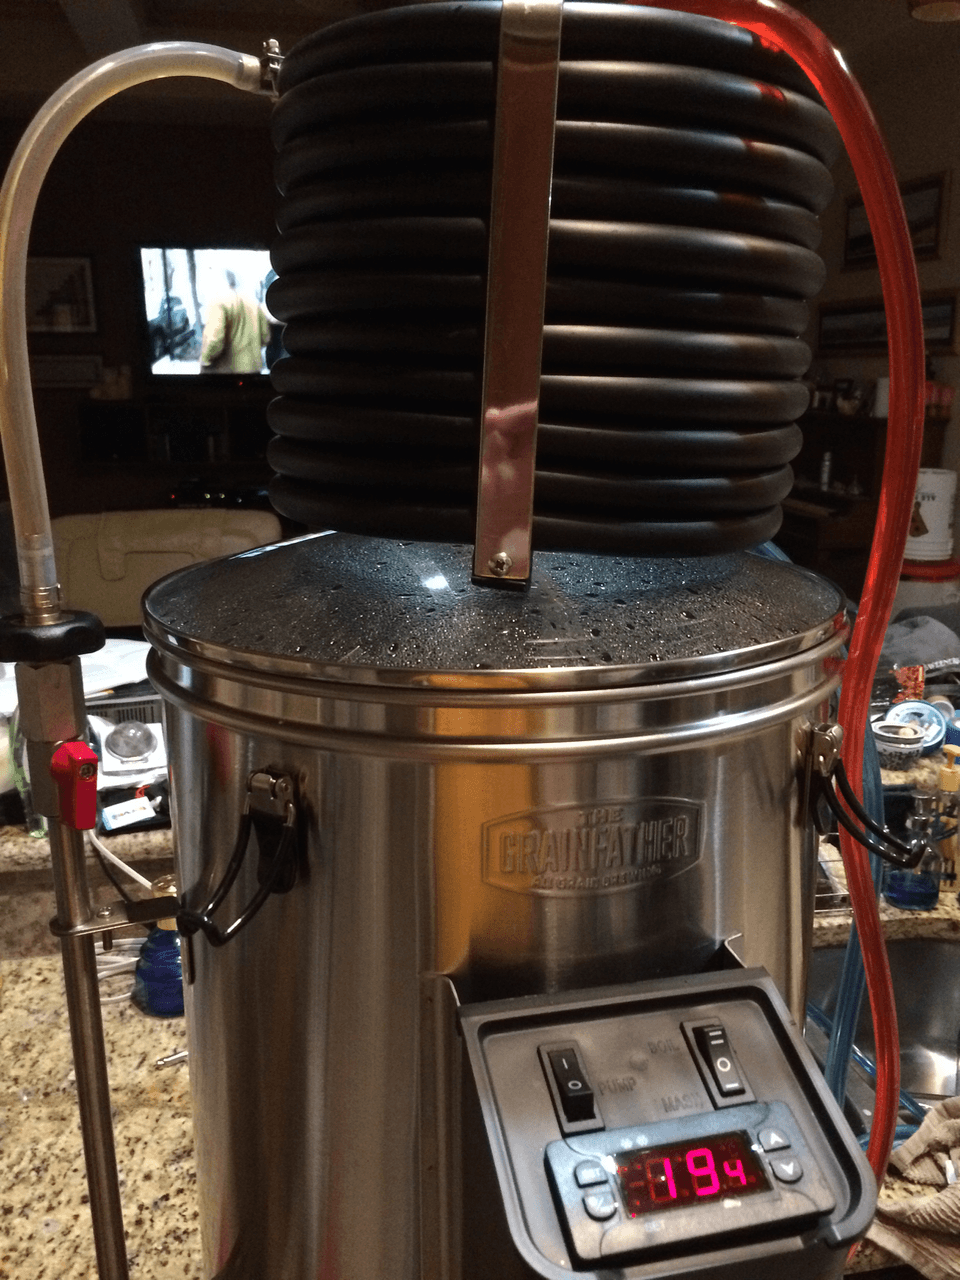 Chiller sits on the top. I circulated the chilled wort back into the urn to drop the temp further.